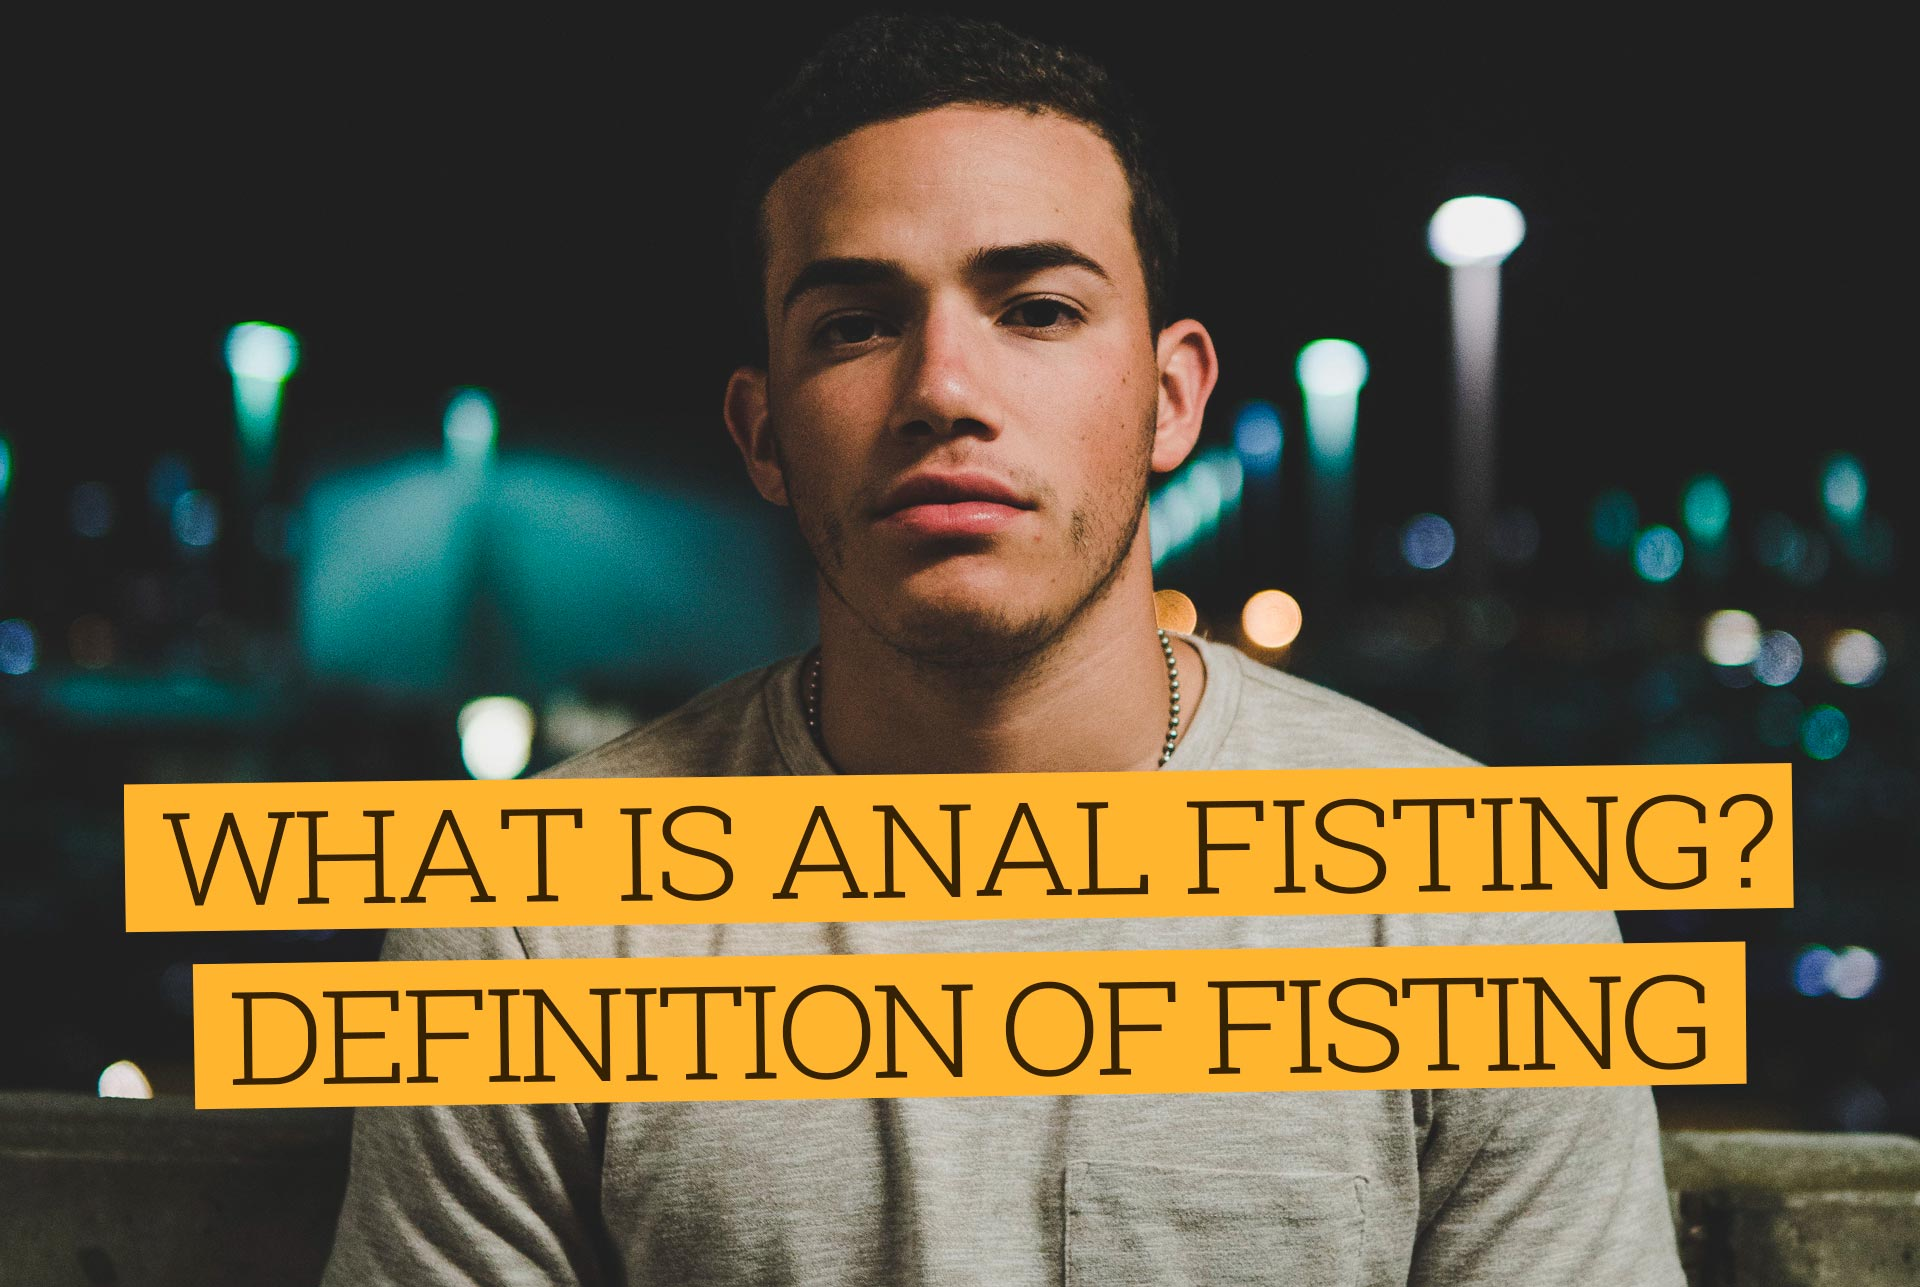 Definition of Anal Fisting